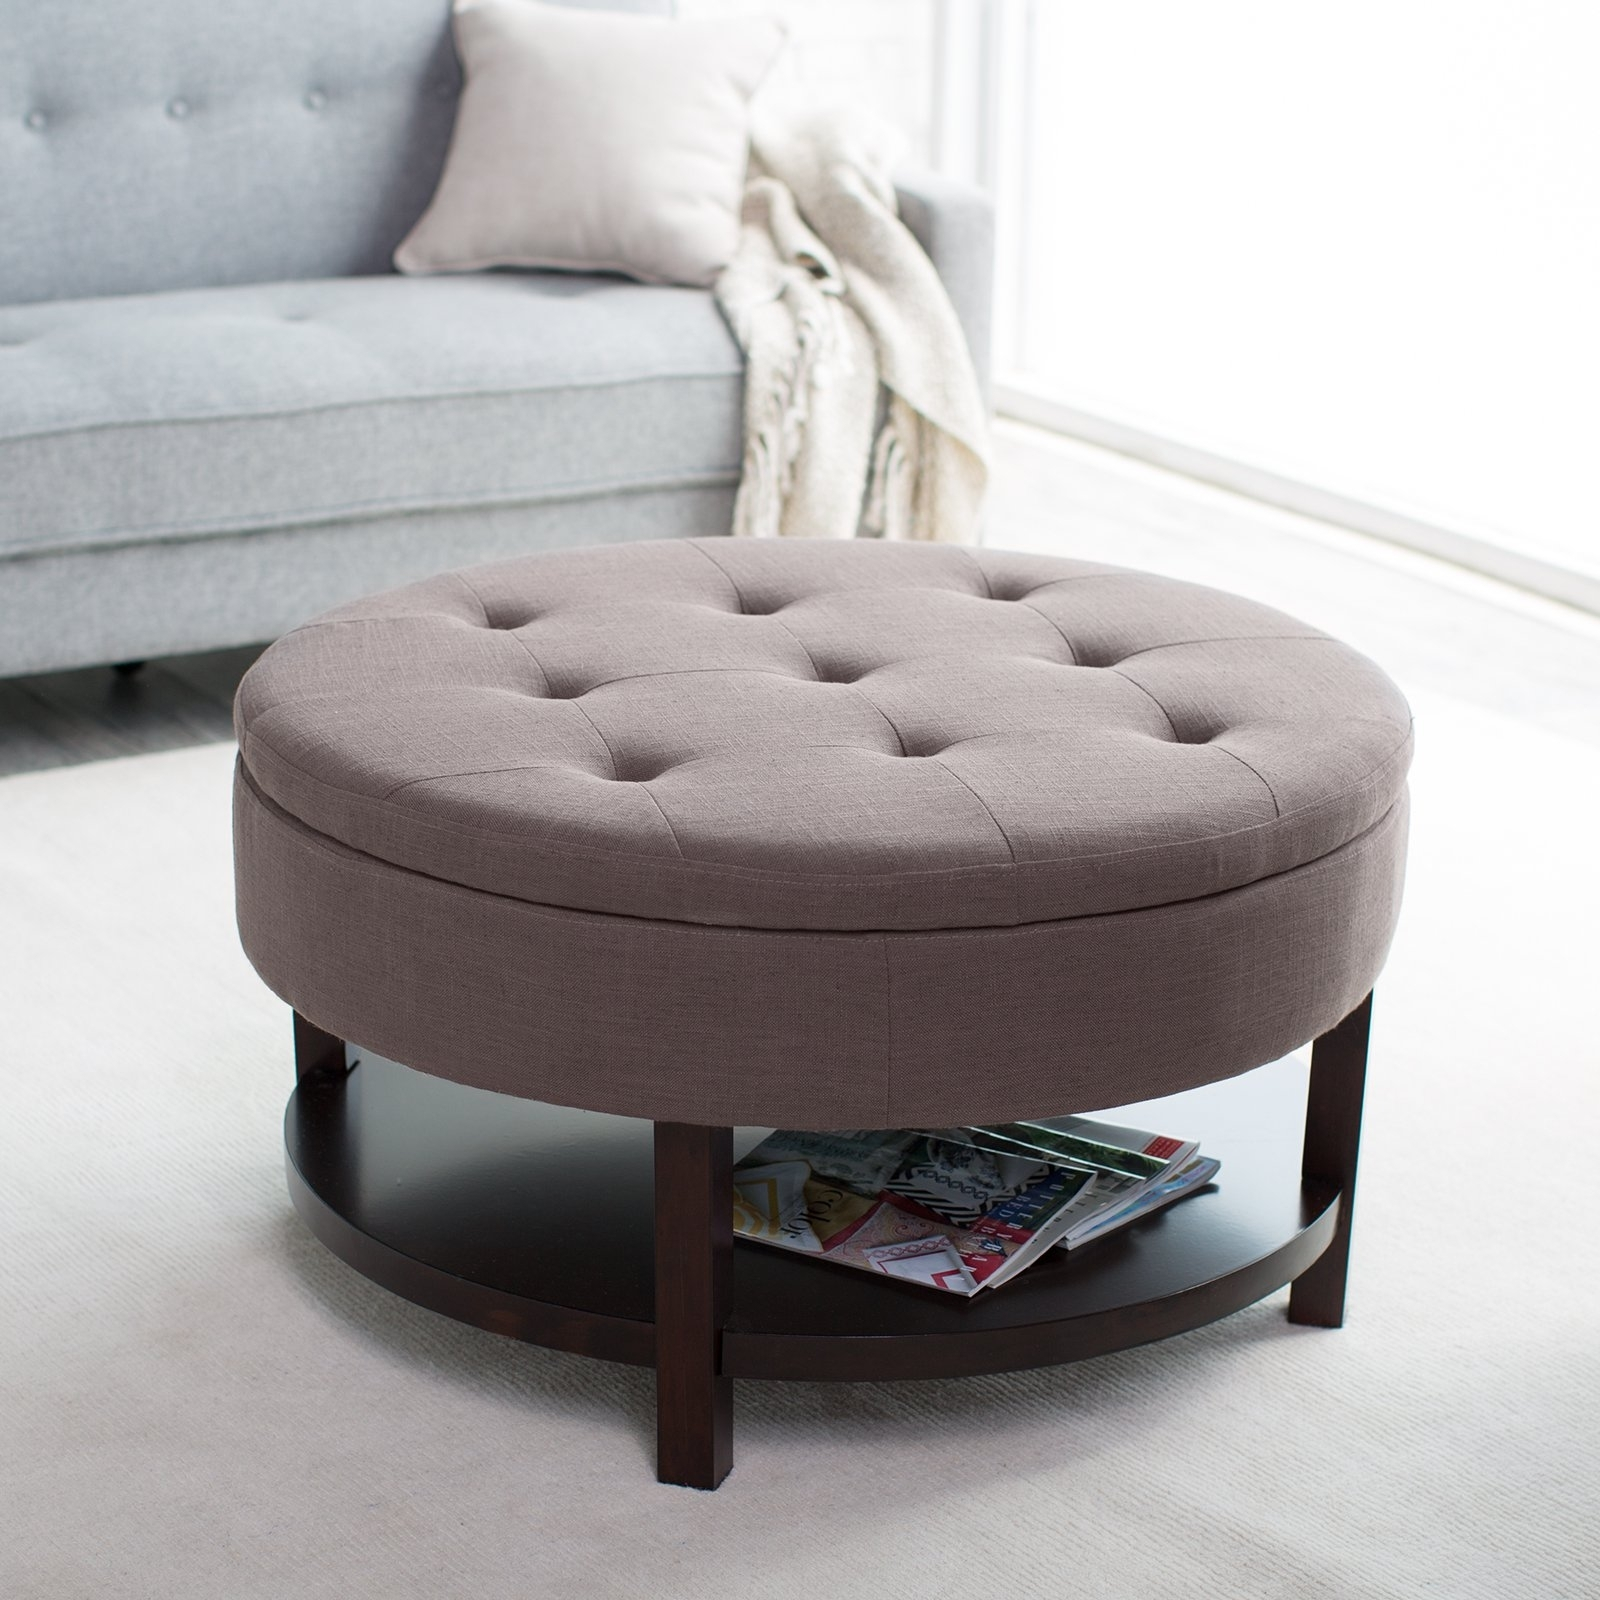 Round Upholstered Ottoman Coffee Table — The New Way Home Decor with Round Button Tufted Coffee Tables (Image 22 of 30)